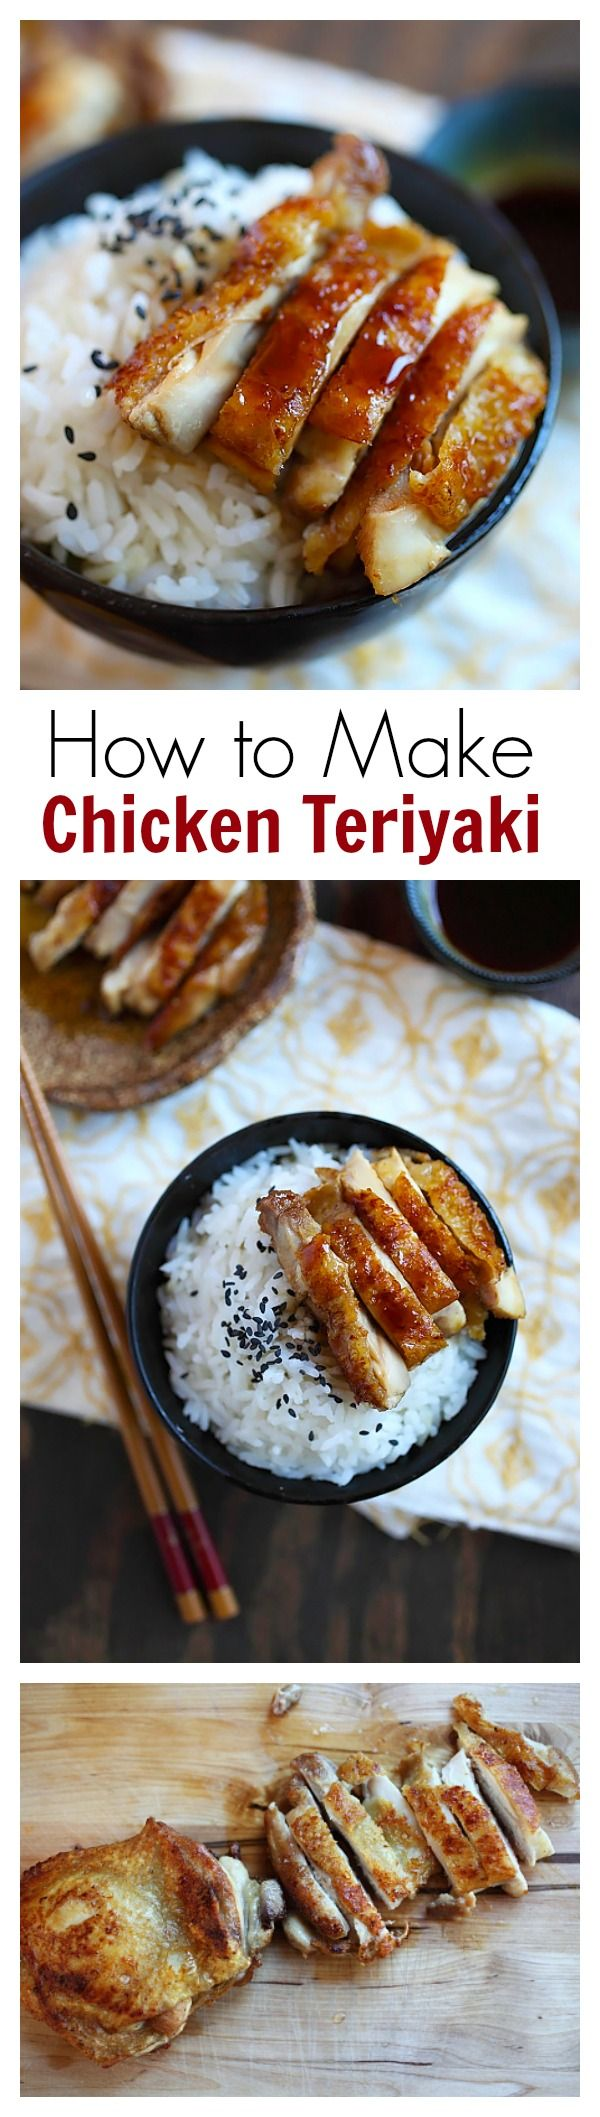 How to make chicken teriyaki – EASY recipe for teriyaki sauce plus chicken teriyaki that tastes like Japanese restaurants | rasamalaysia.com